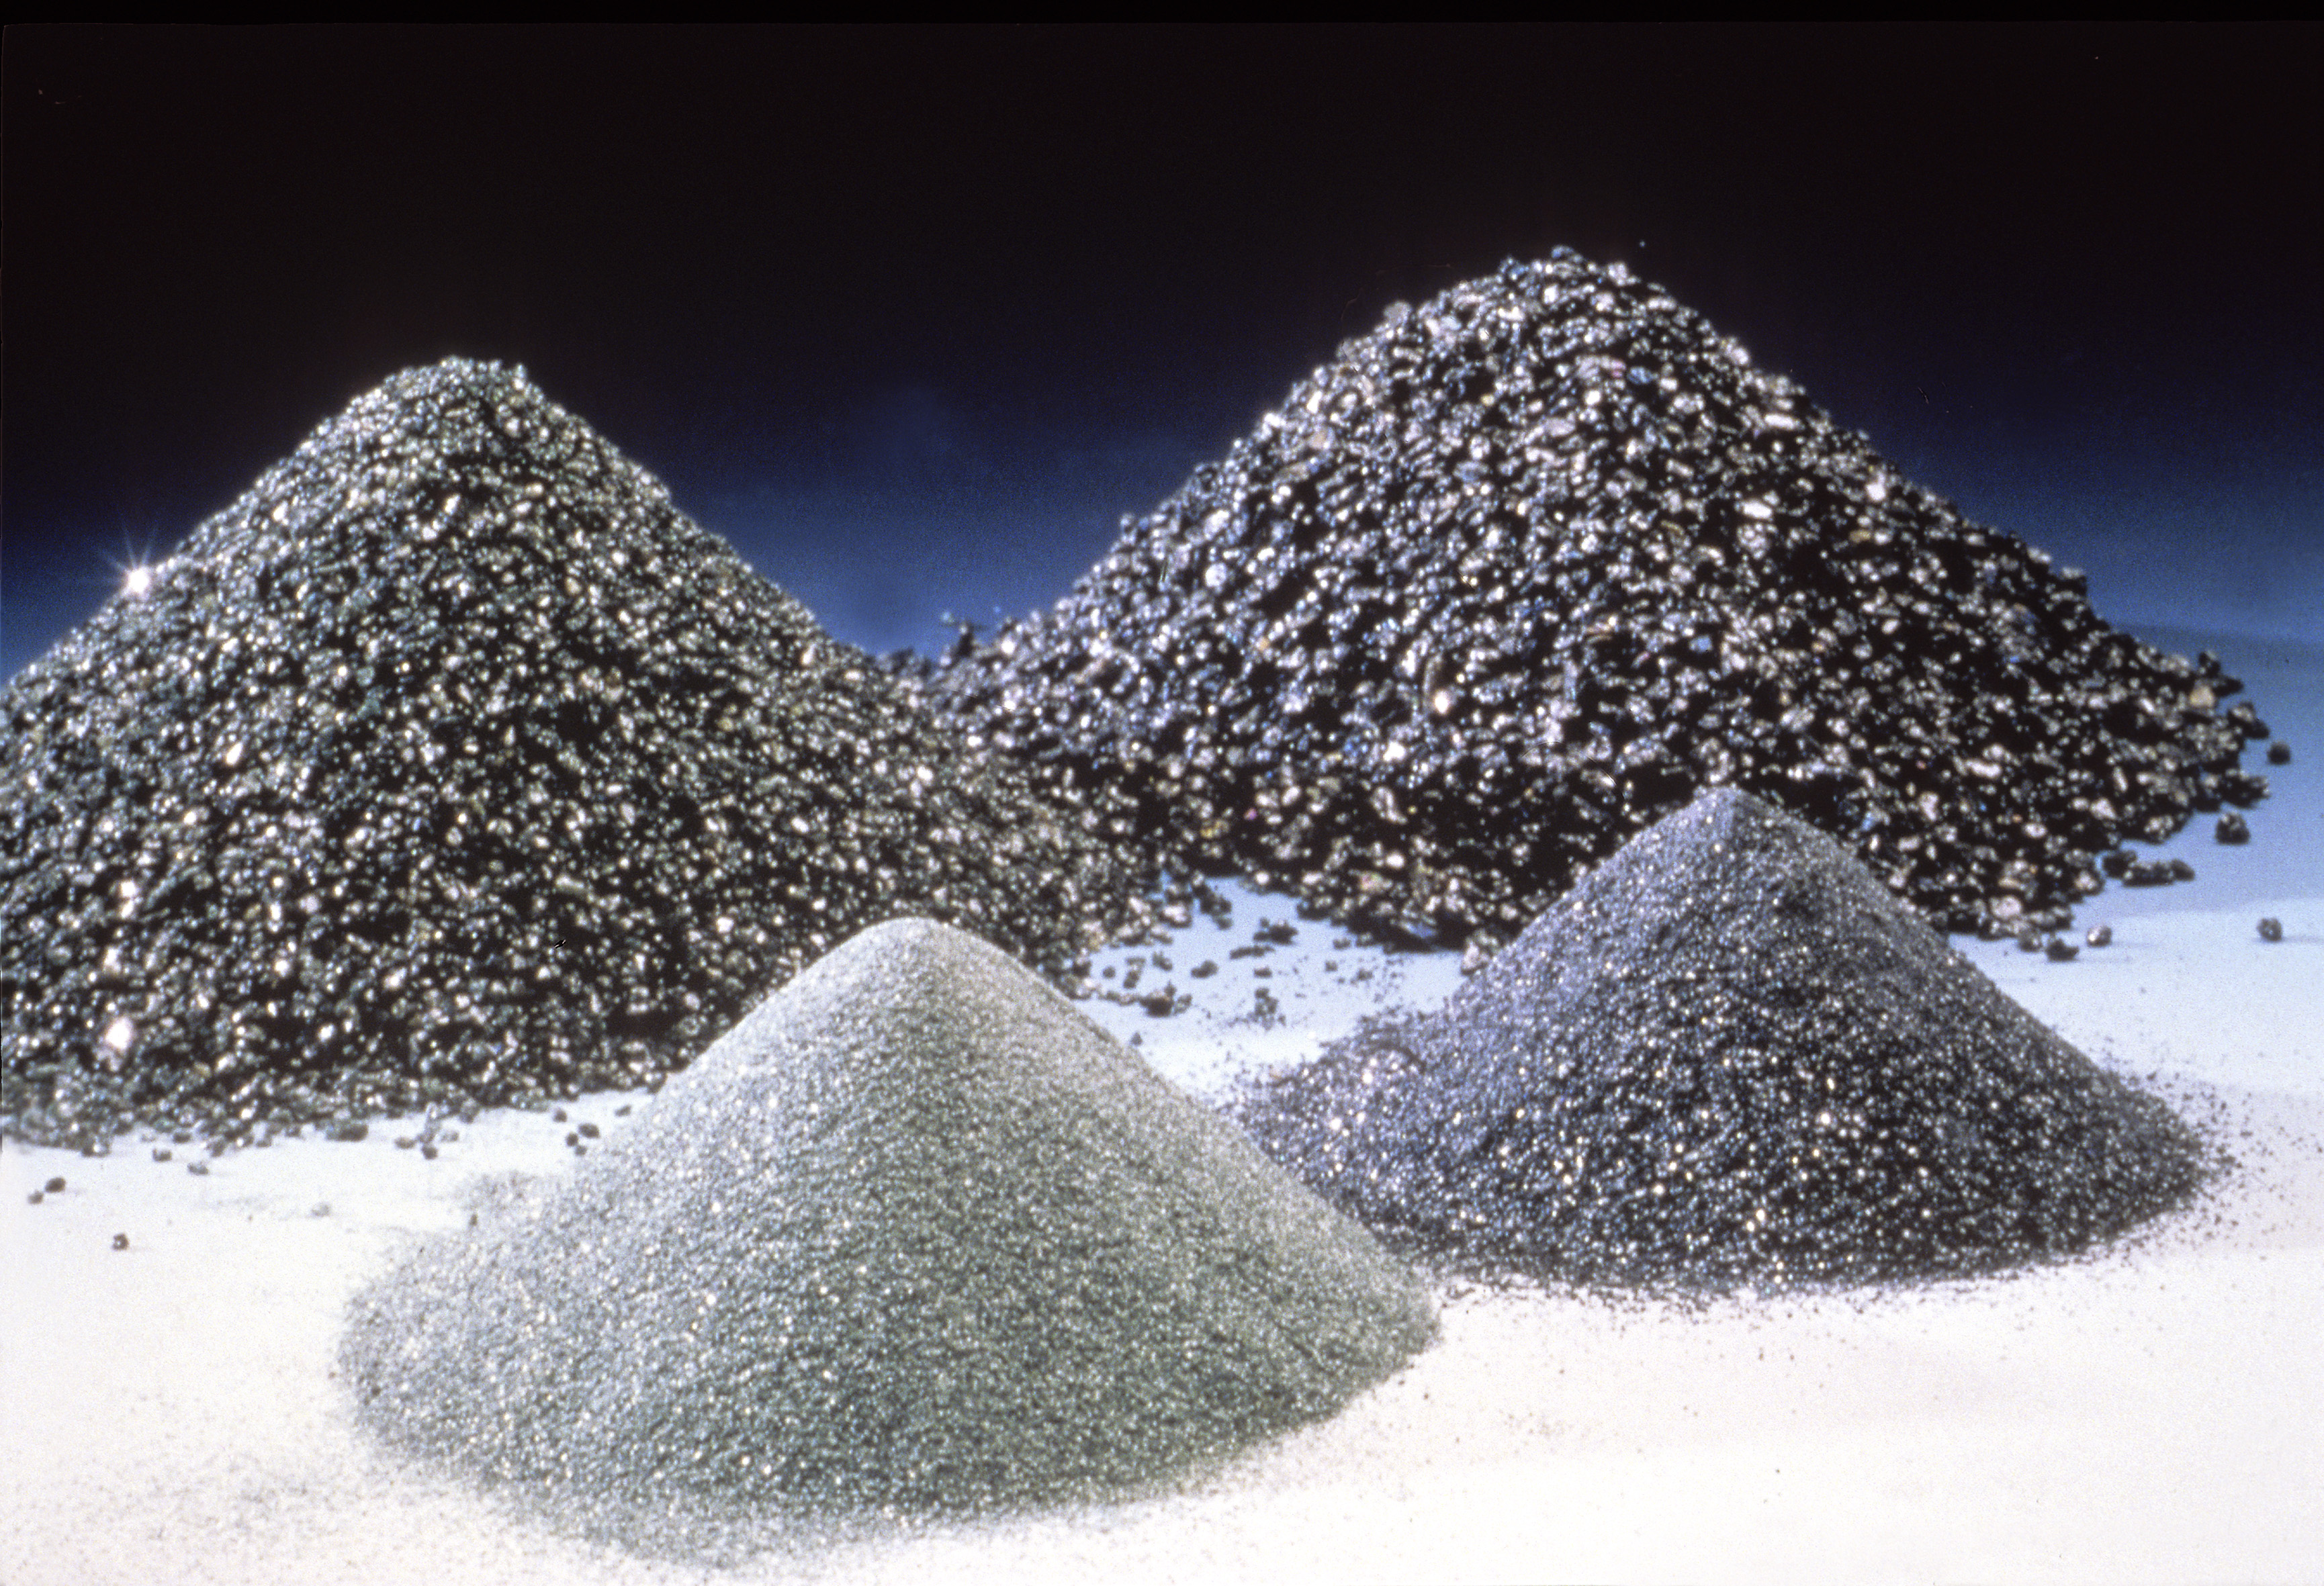 Green and black silicon carbide powders